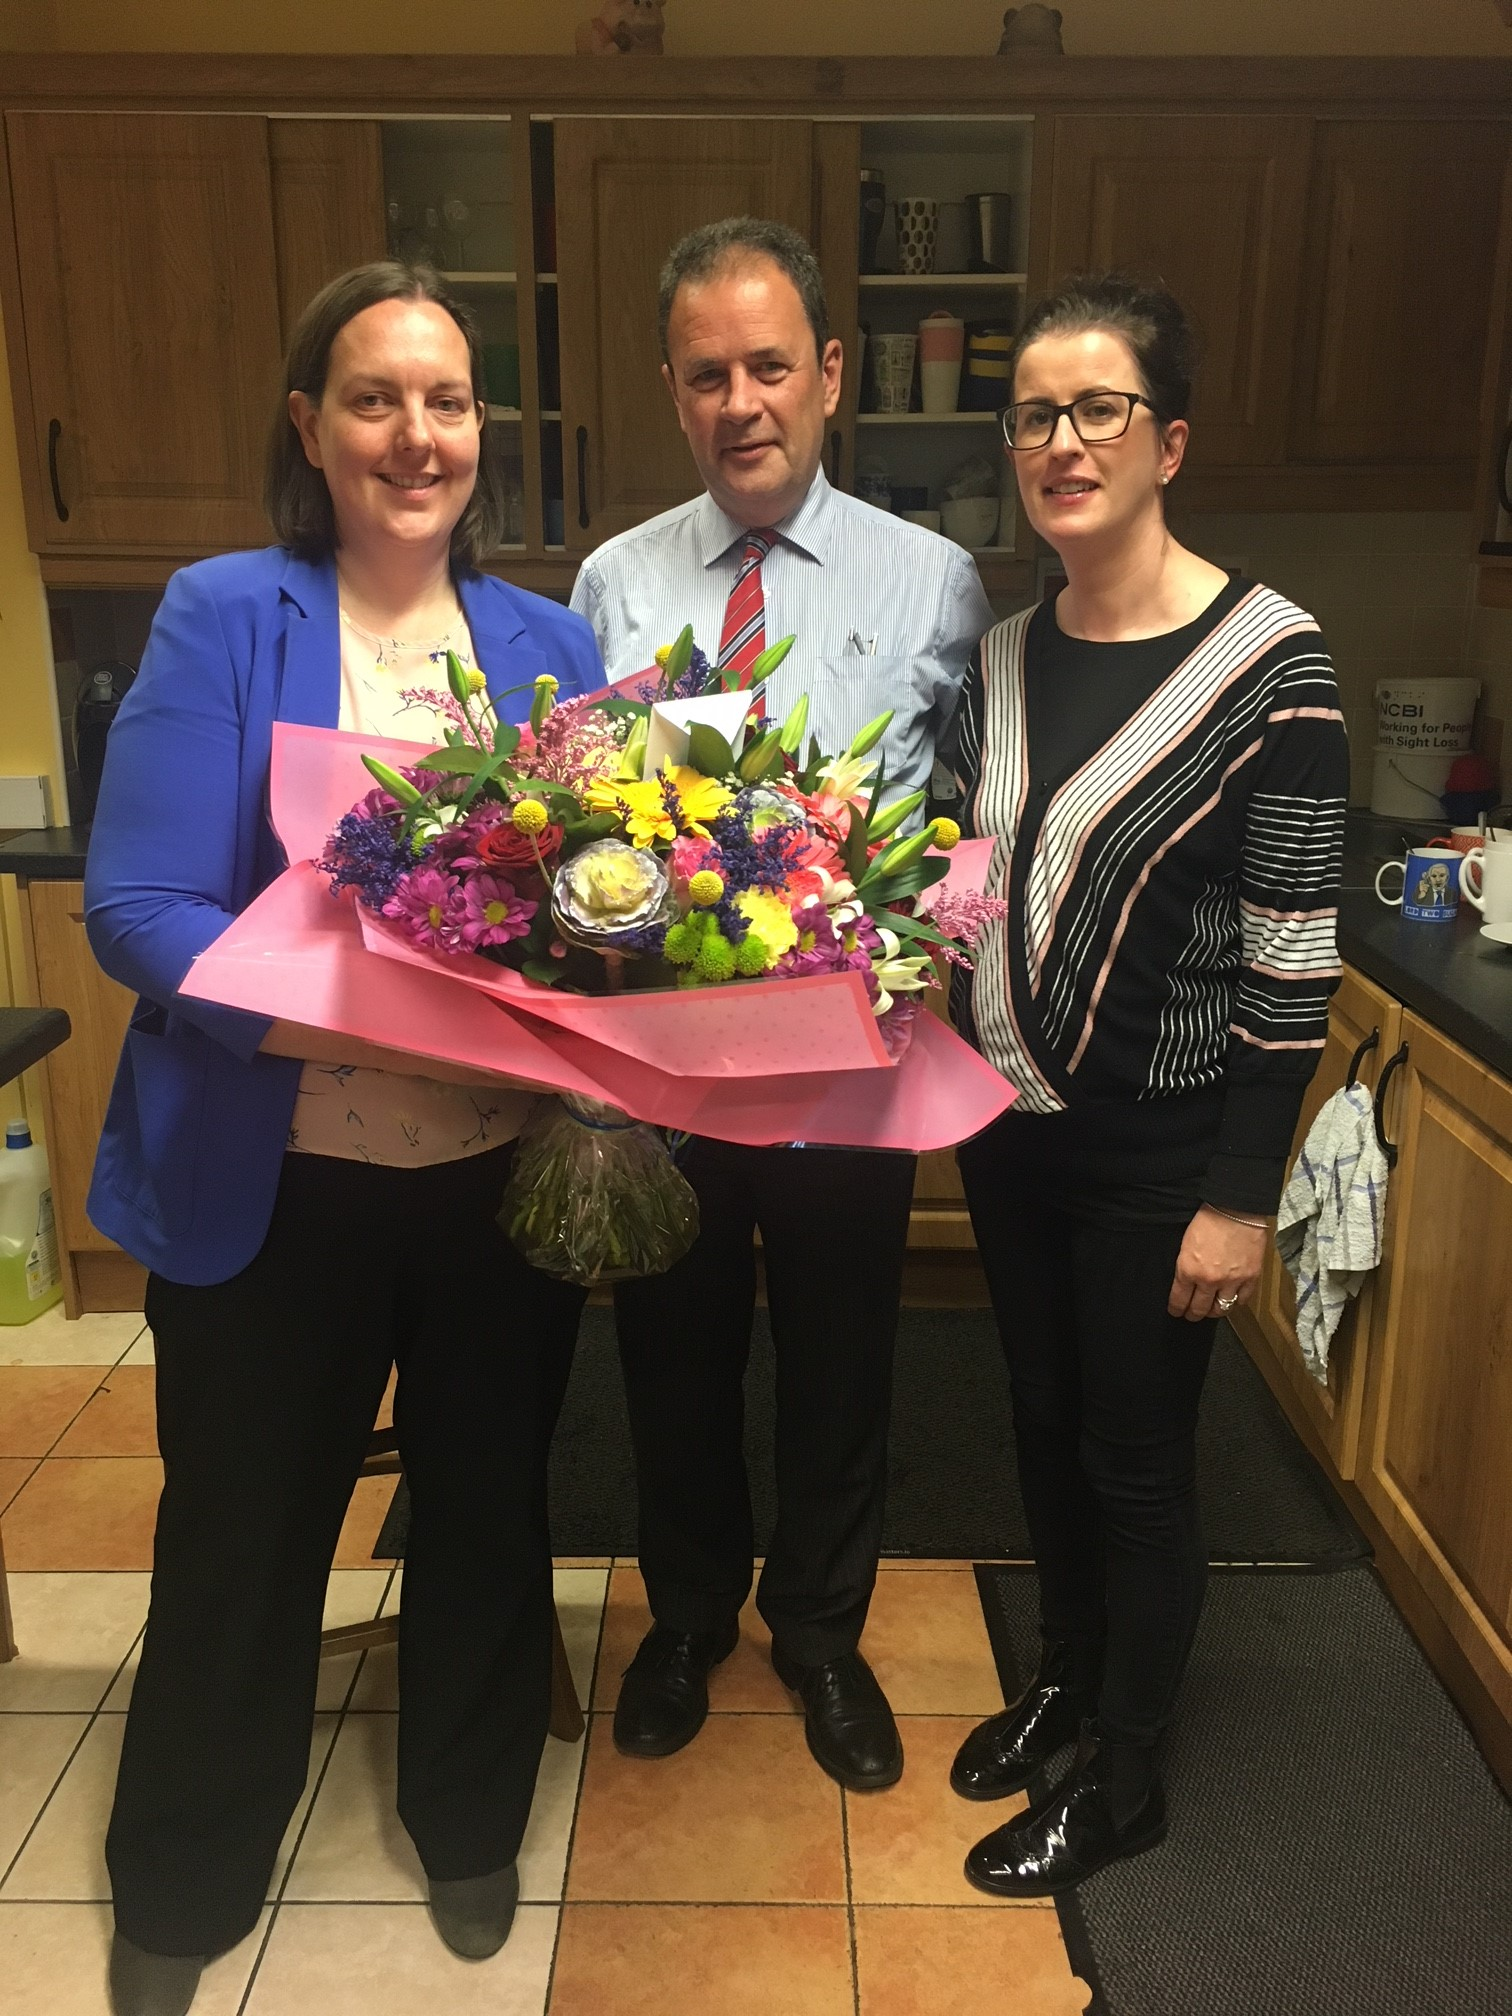 Image of Fionnuala, Ruairi and Niamh Connolly with flowers